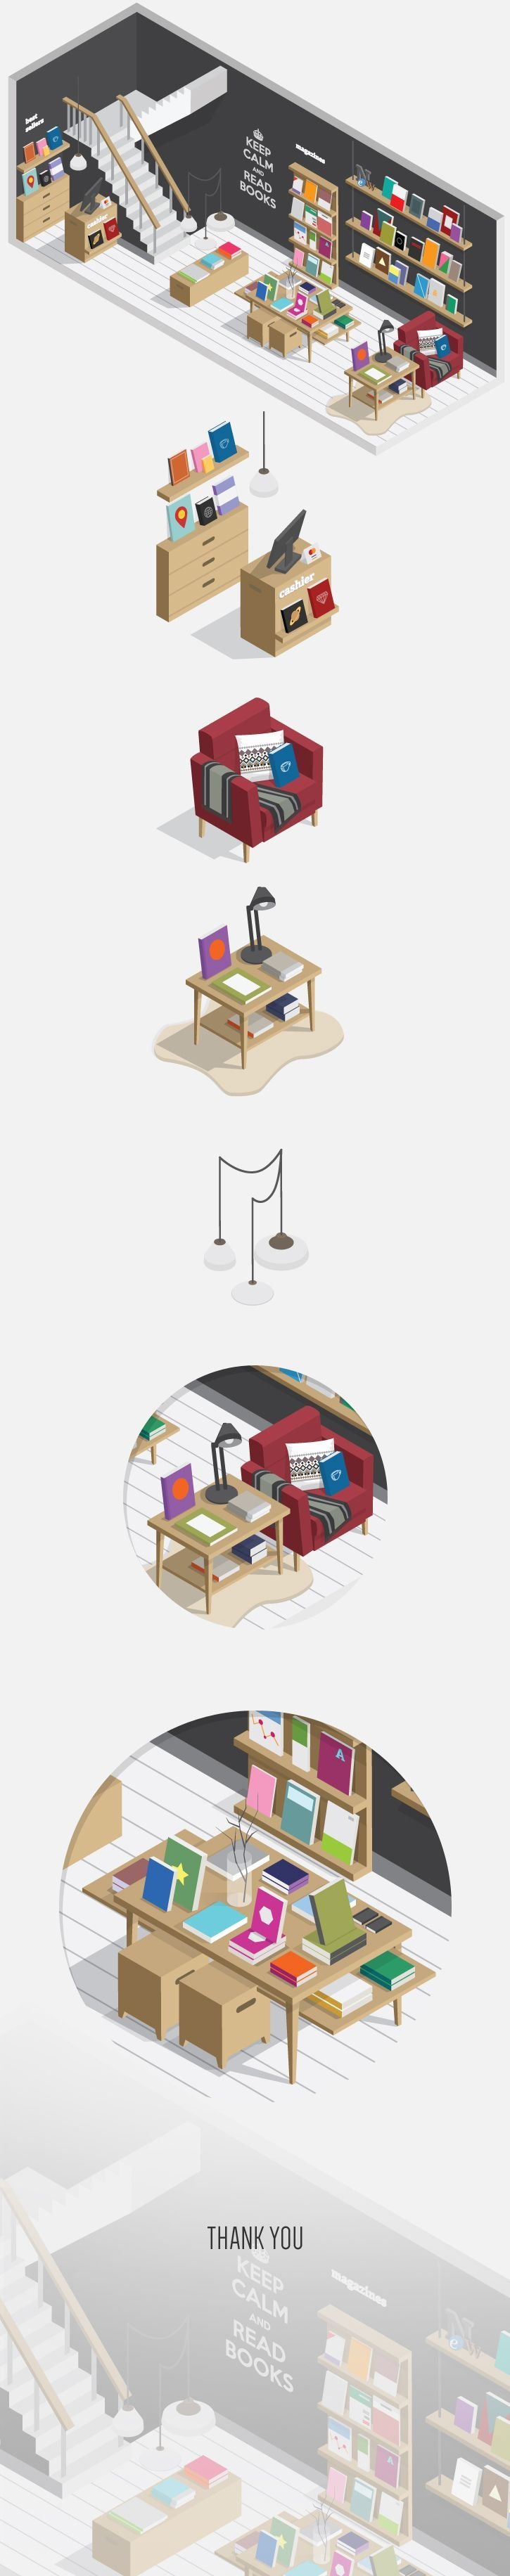 #flat_illustration Bookstore https://www.behance.net/gallery/21453685/Bookstore 647c8db172fb7a778da55128b1f4eefd.jpg (JPEG Image, 725 × 3664 pixels) - Scaled (26%):